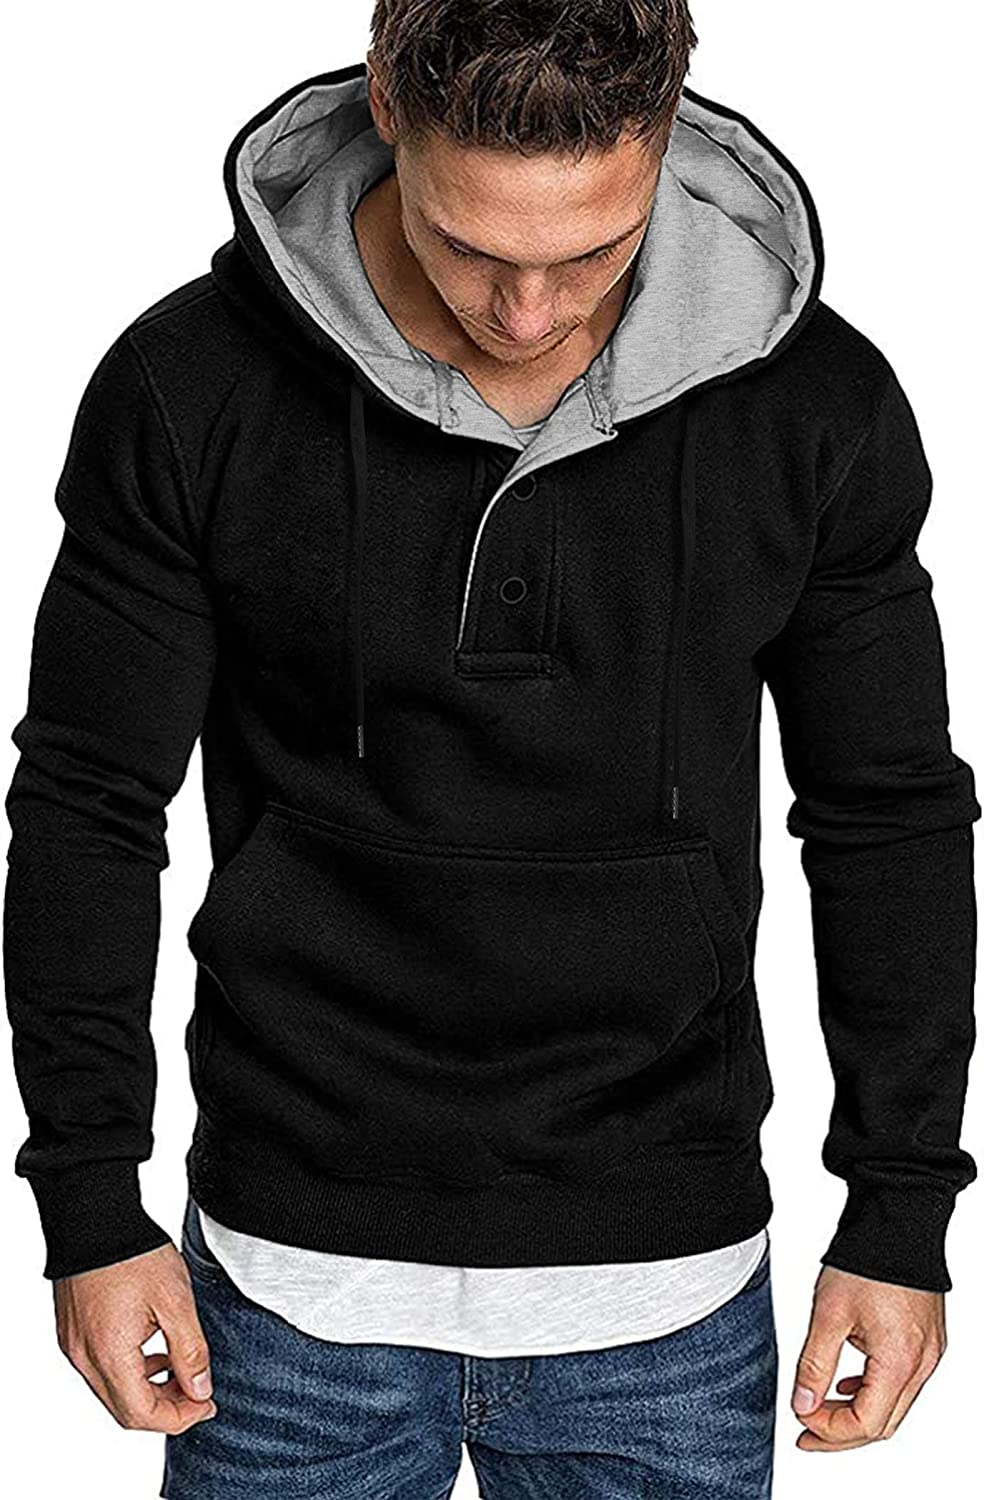 COOFANDY Men's Hoodies Sweatshirts Cotton Fleece Lightweight Long Sleeves Athletic Pullovers: Clothing